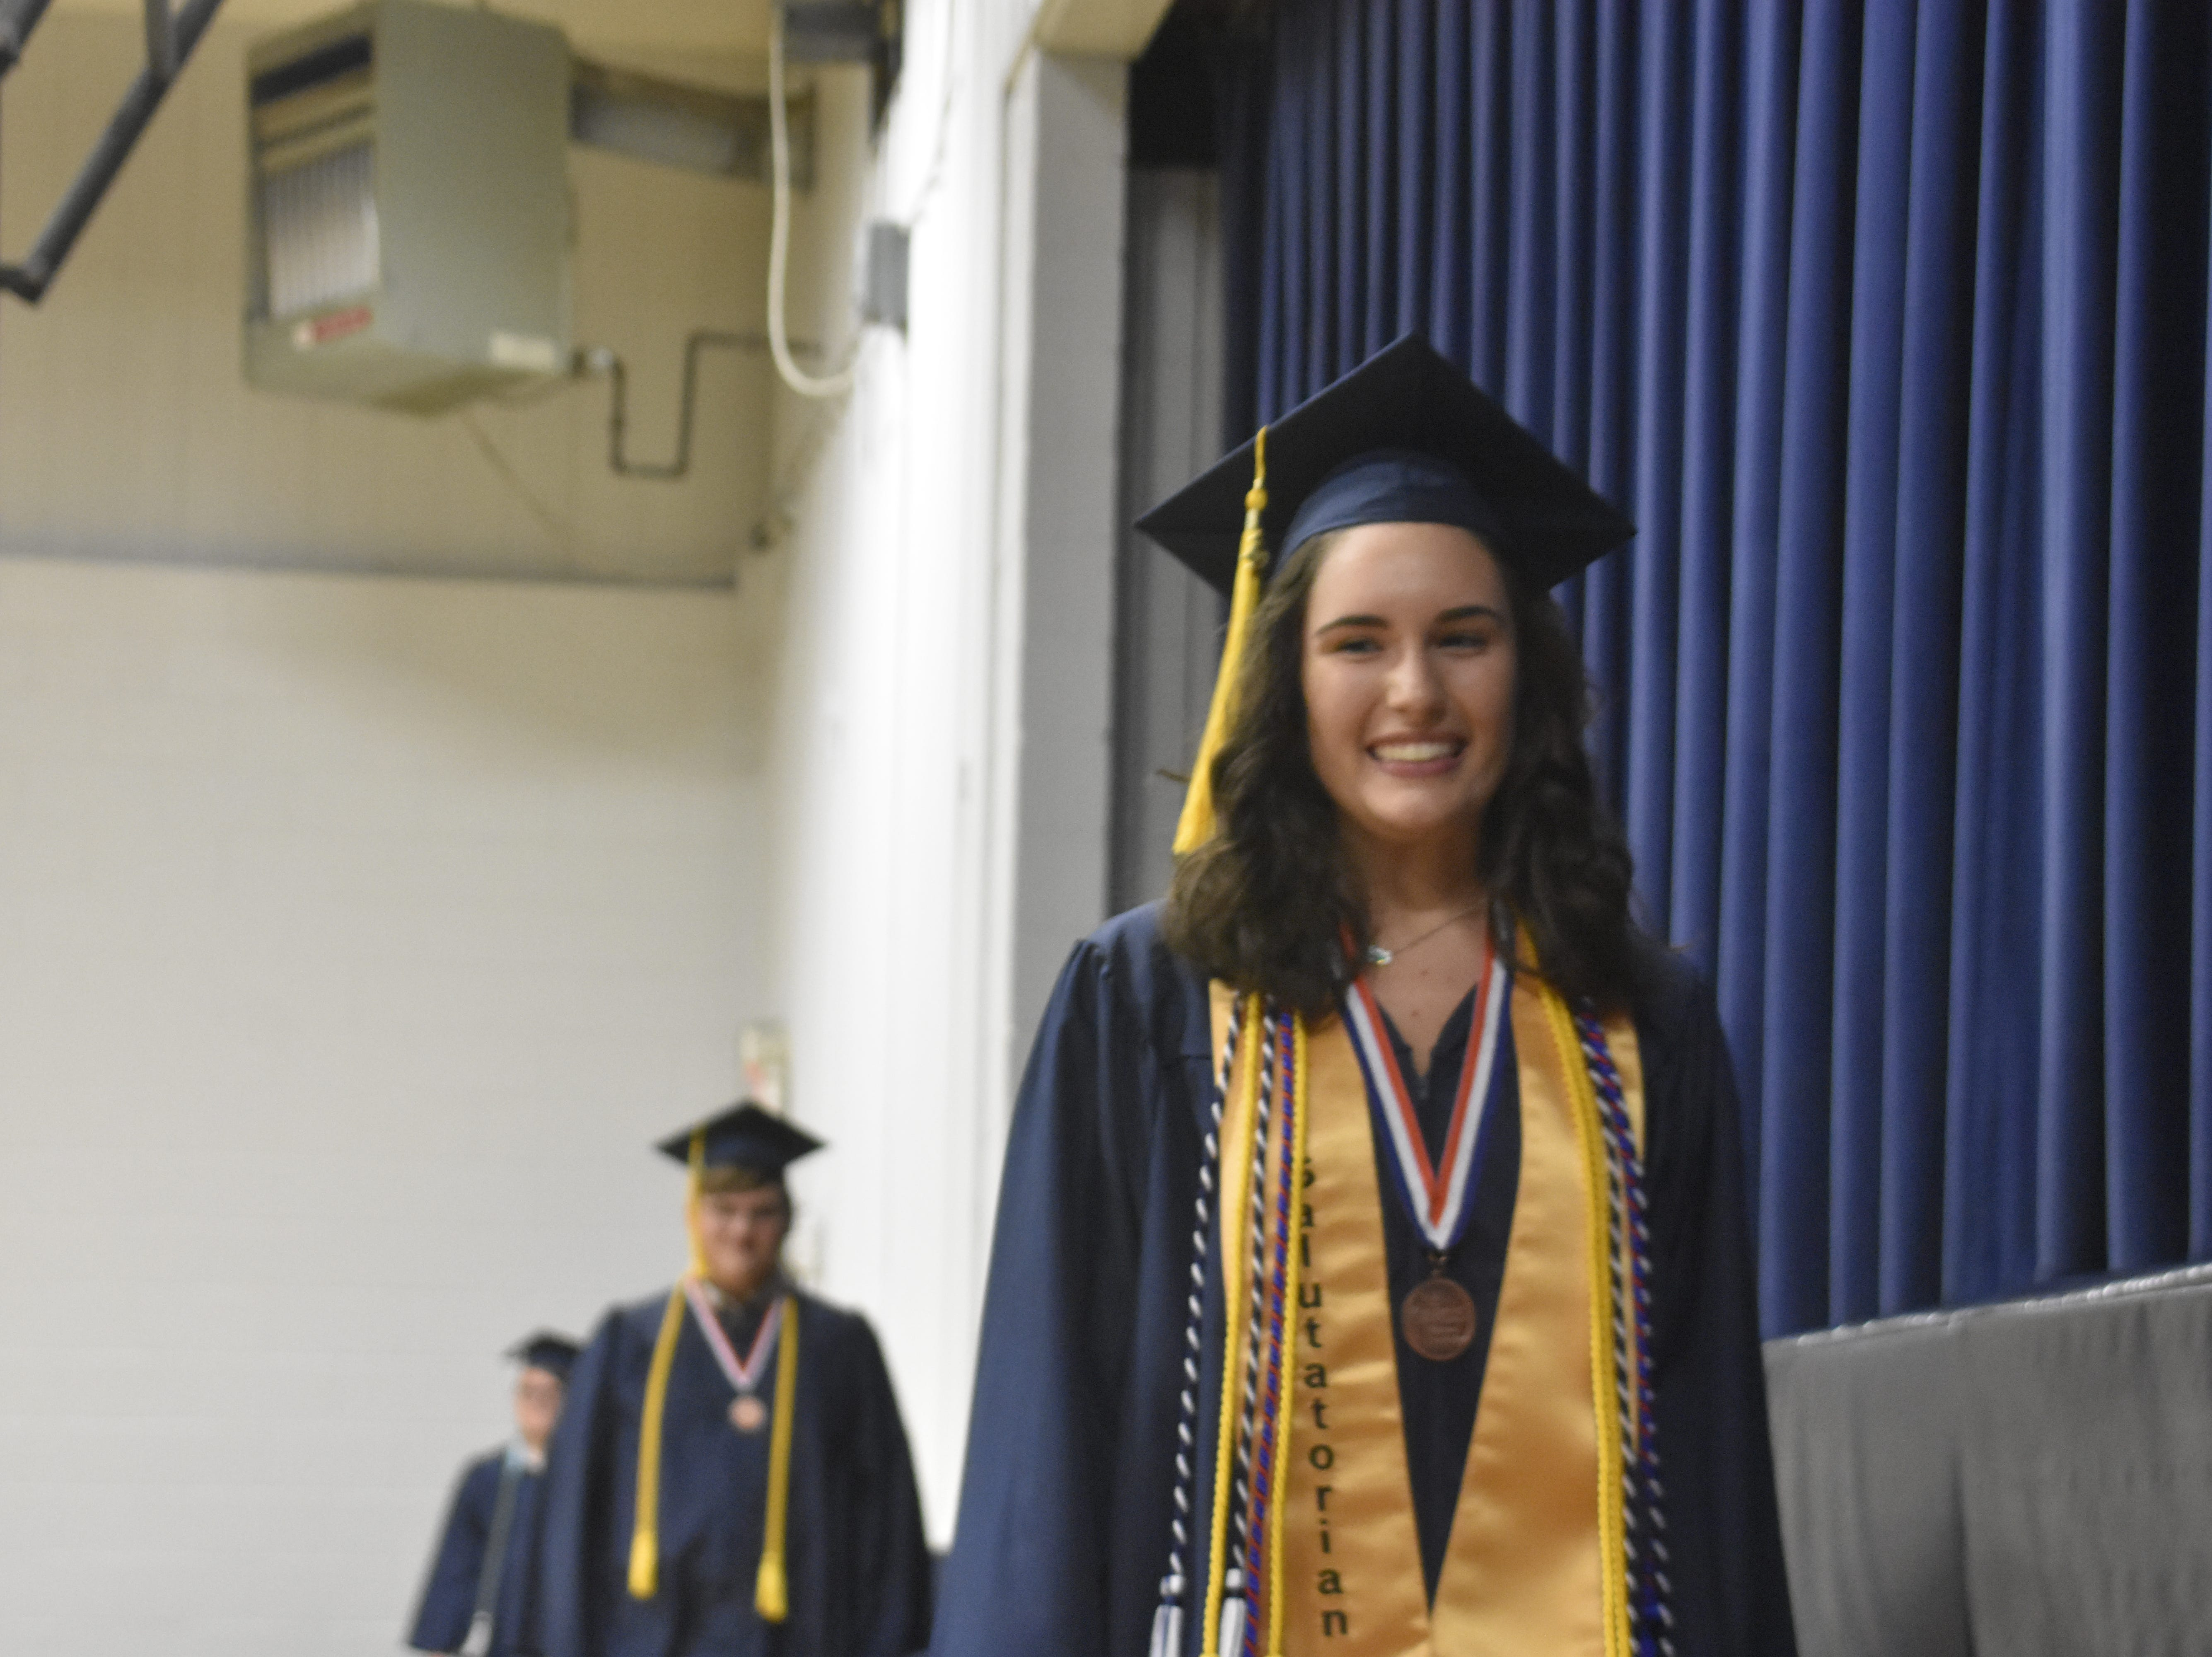 Pleasant View Christian School's class of 2019 graduated Monday, May 13.